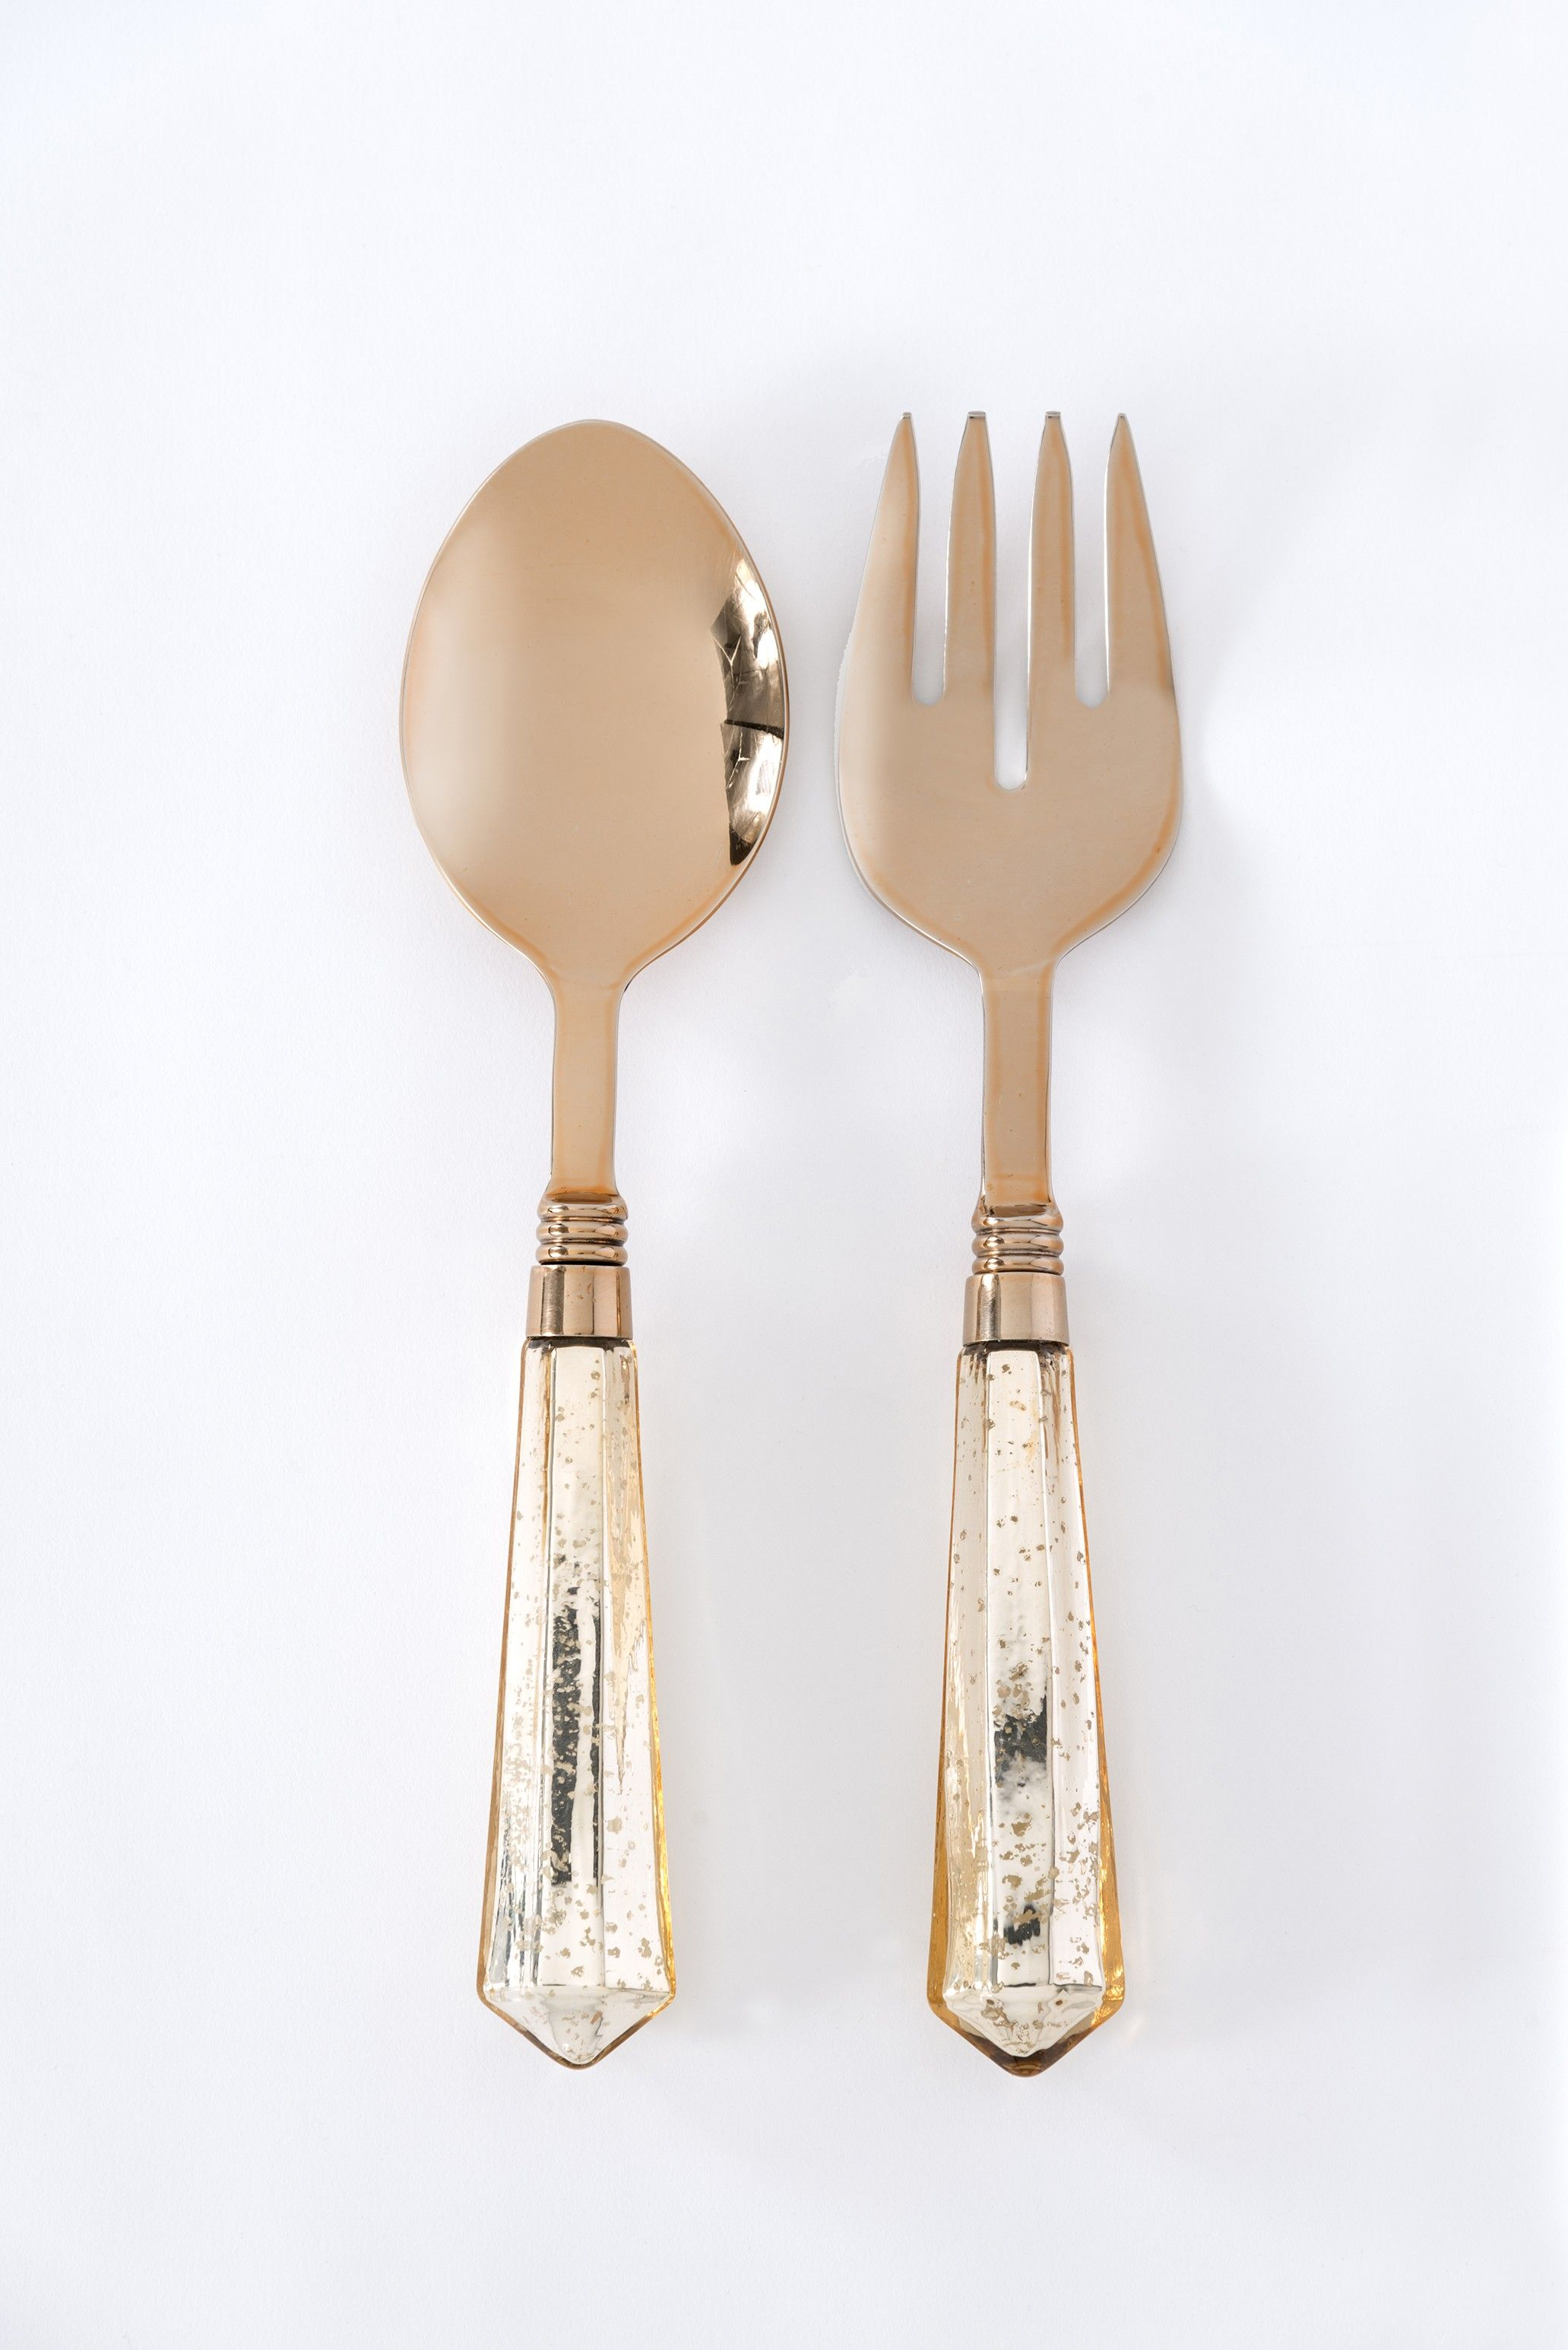 Take your party to the next level with our rose gold salad servers